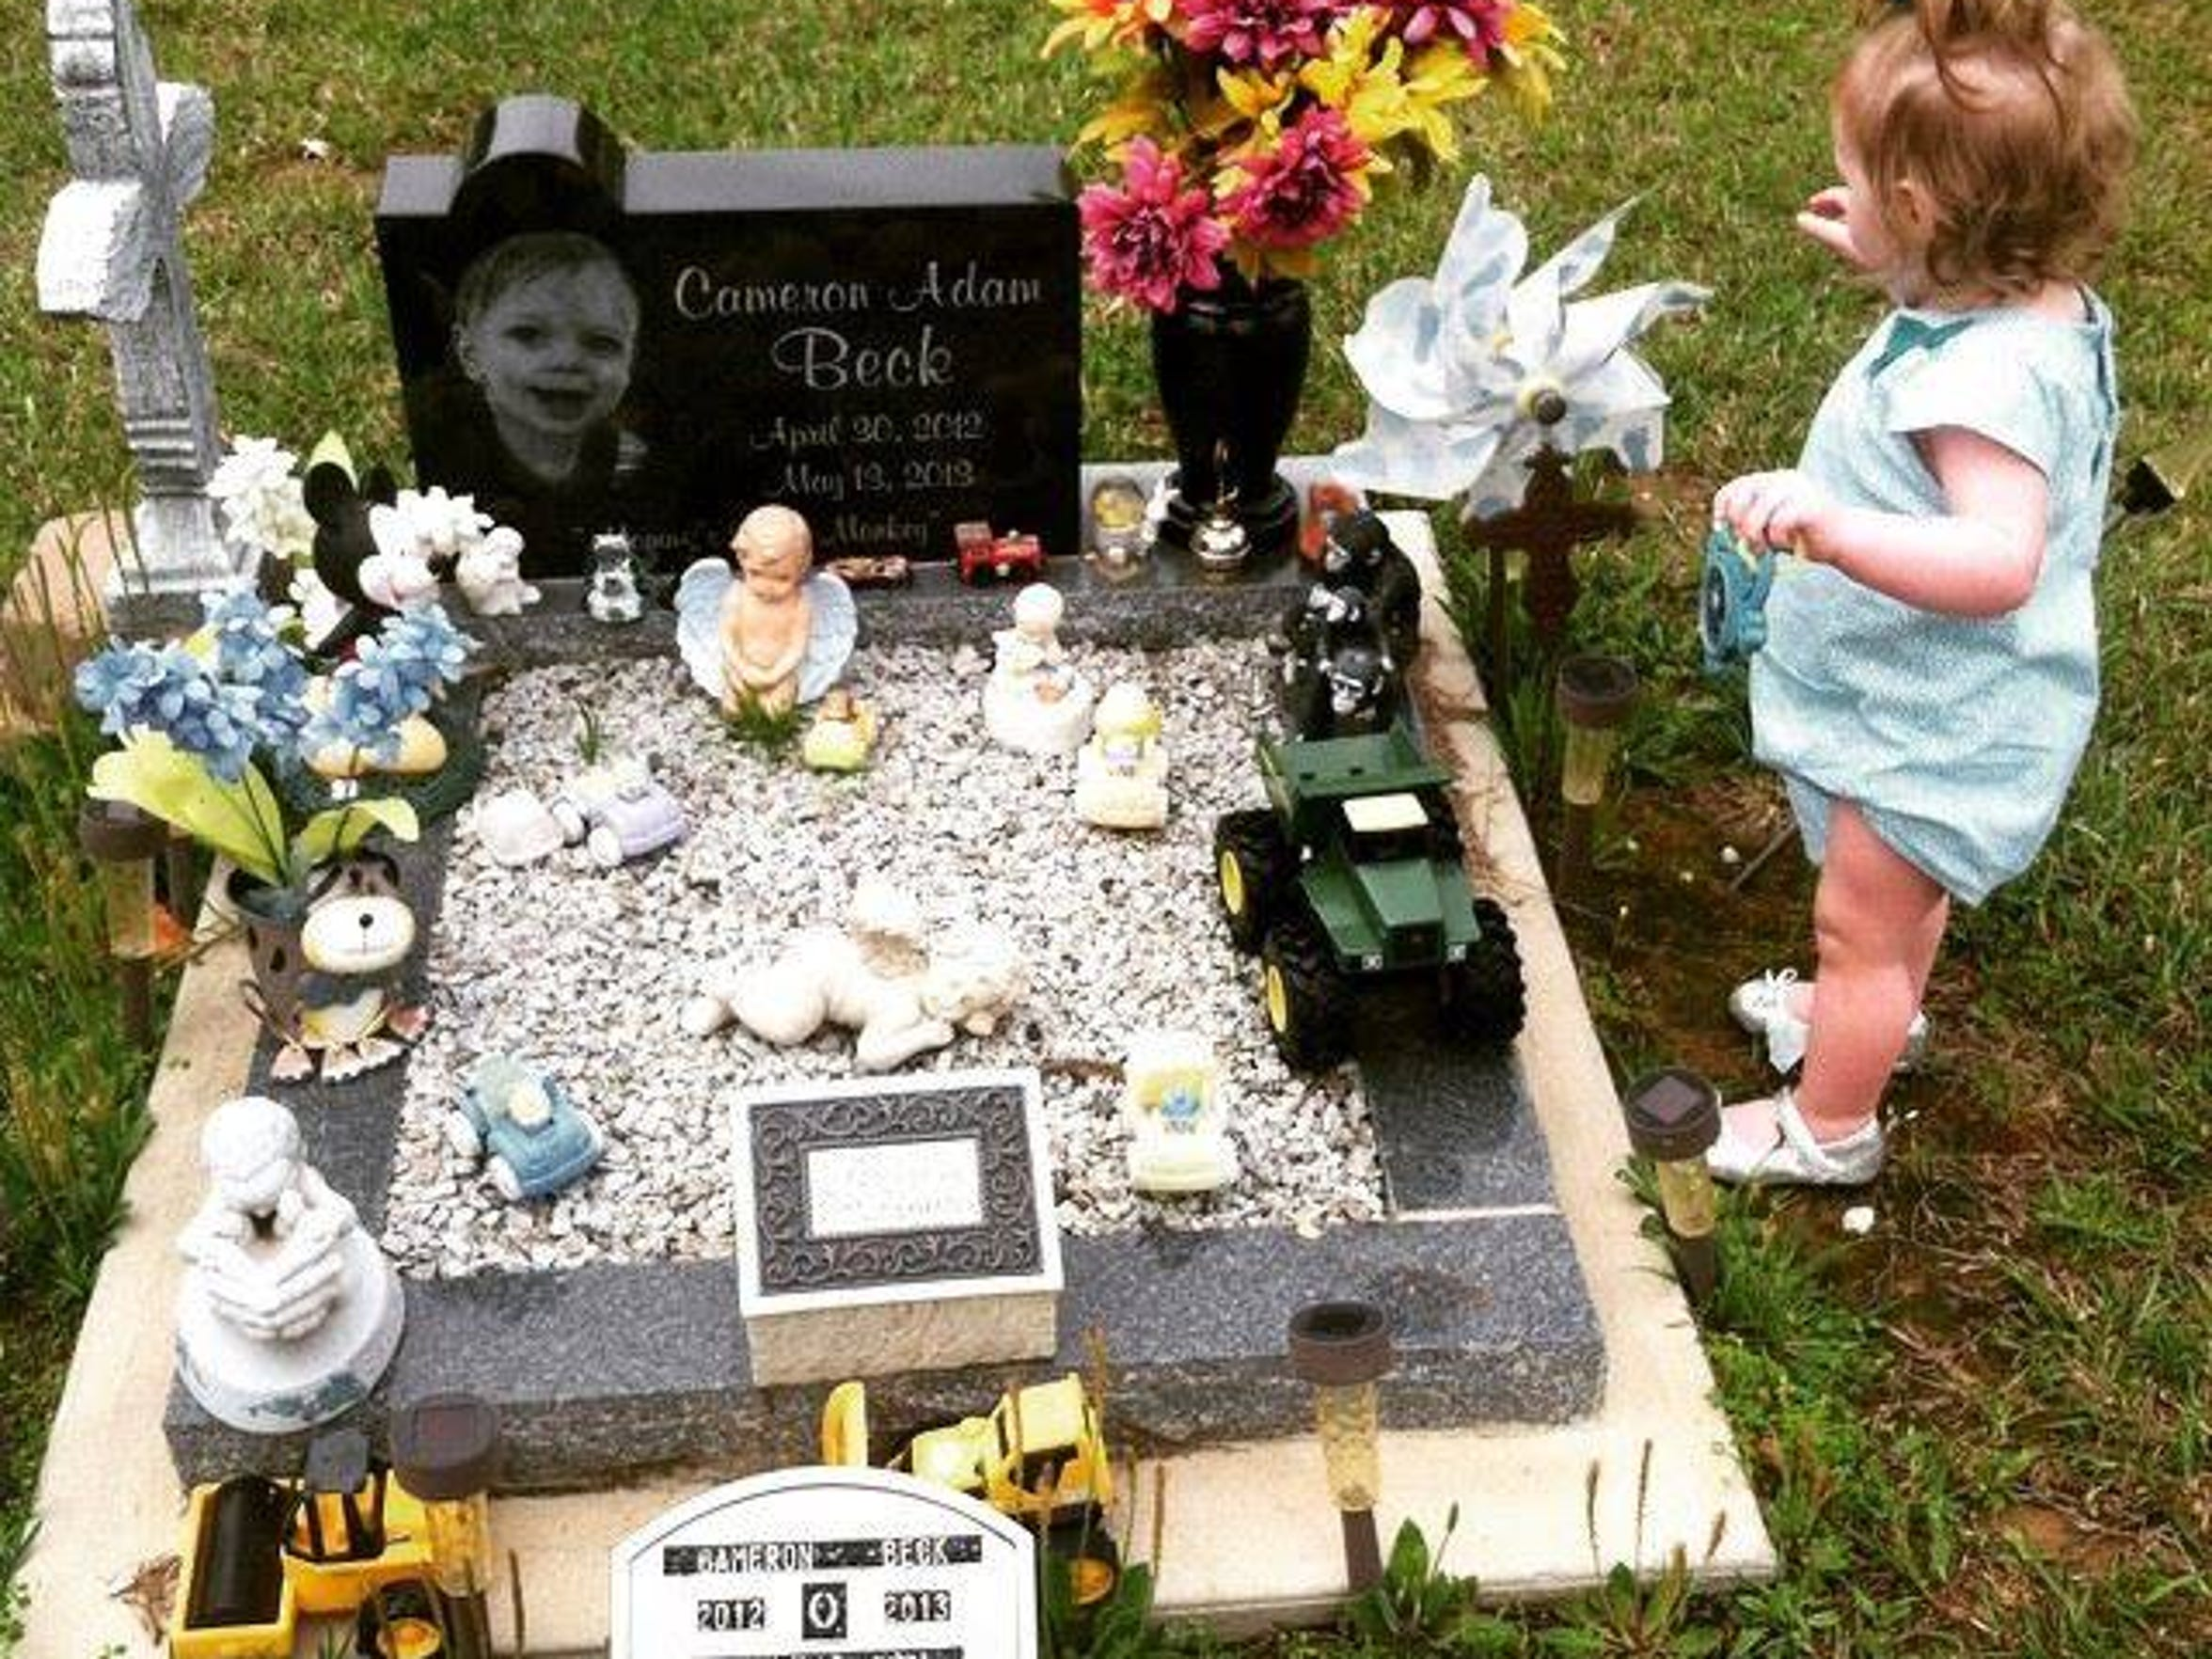 Cameron's sister, Madison Hope, visits his grave.